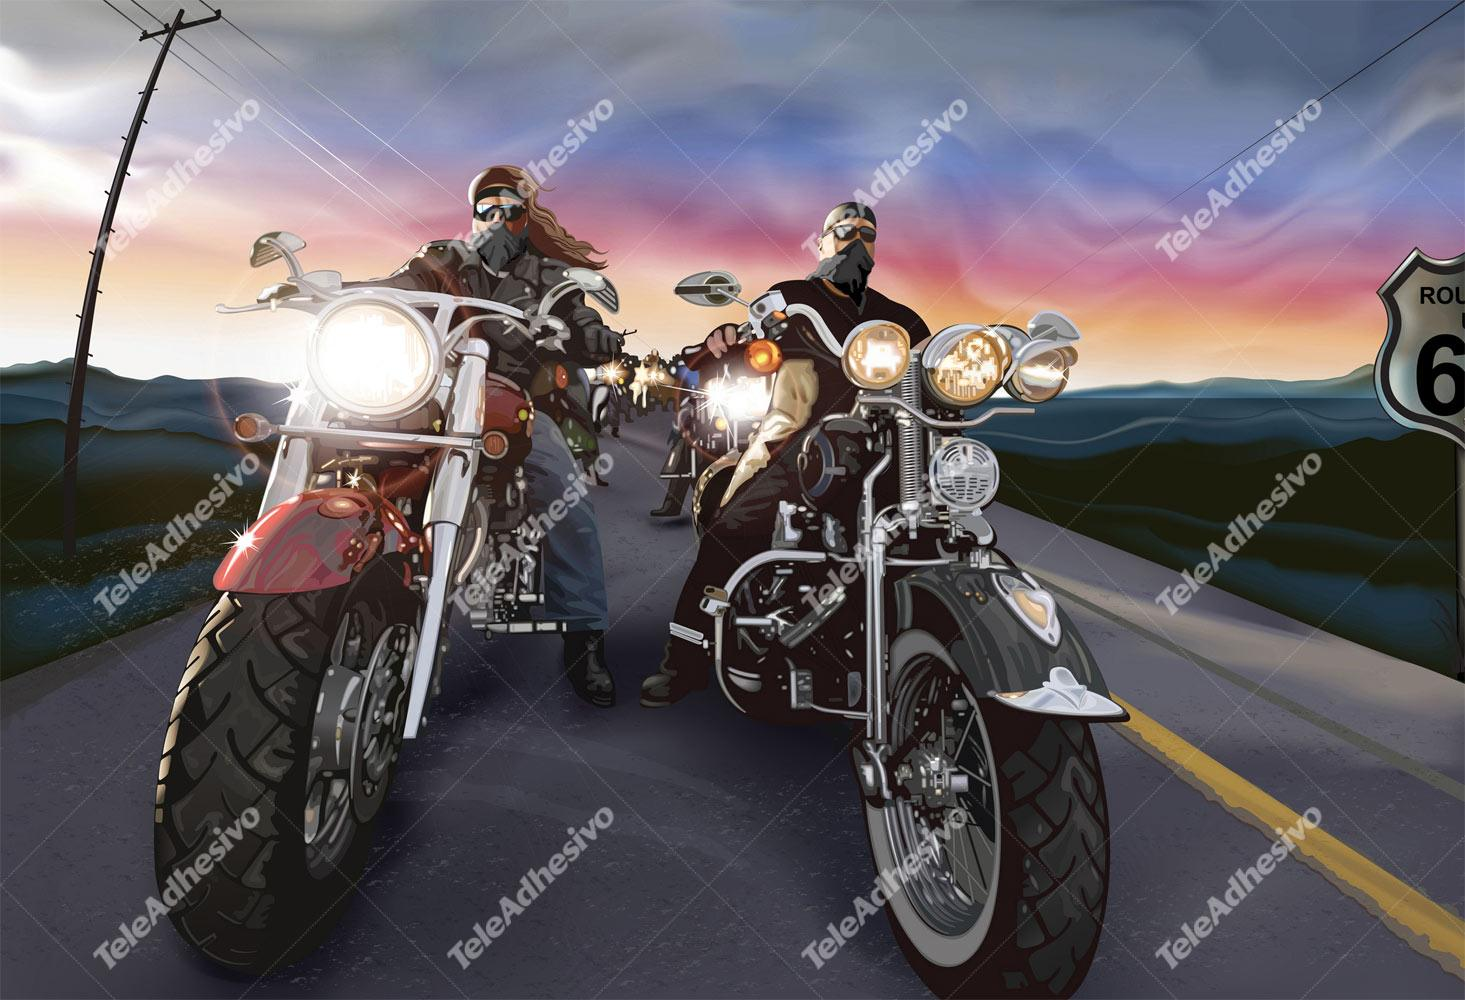 Wall Murals: Bikers Route 66